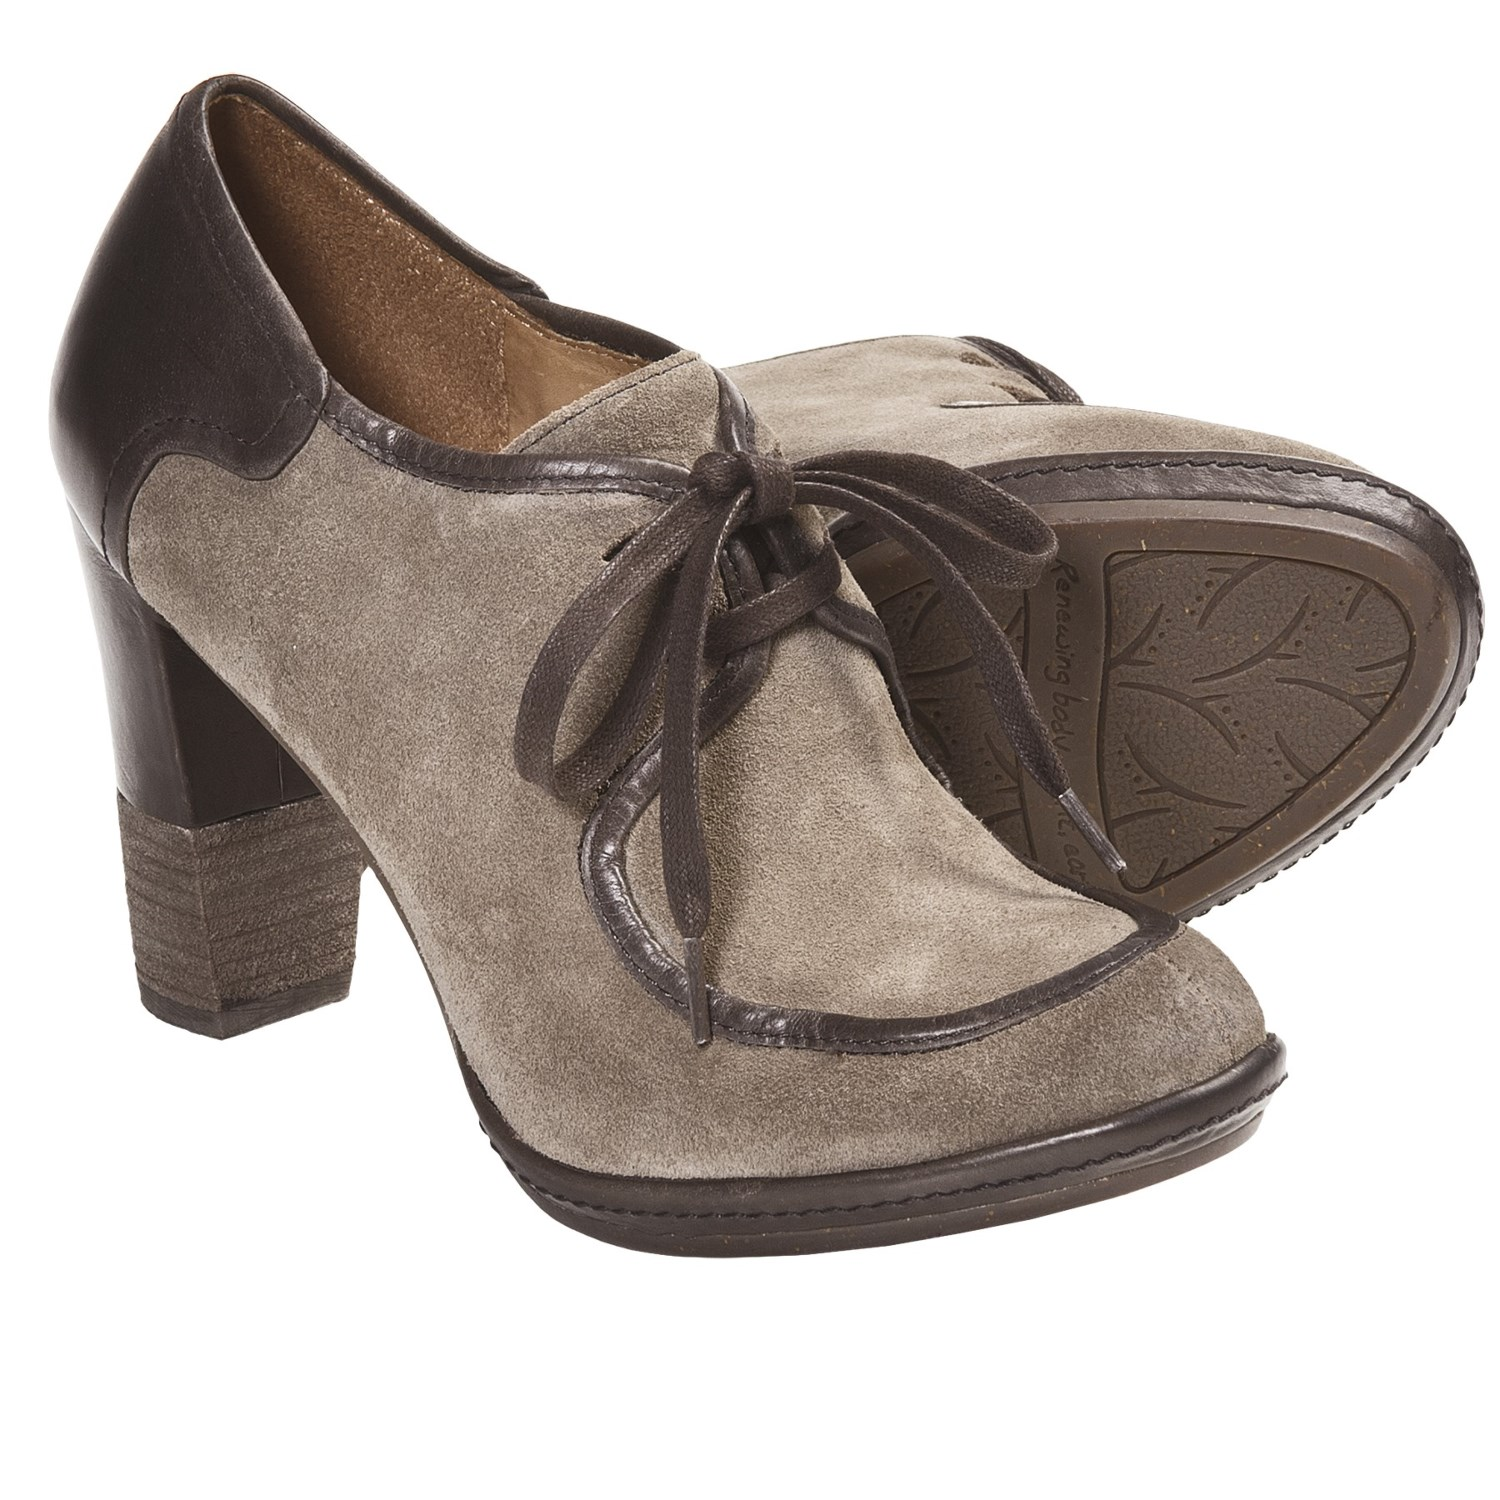 Naya Mindy Oxford Shoes (For Women) in Taupe/Brown